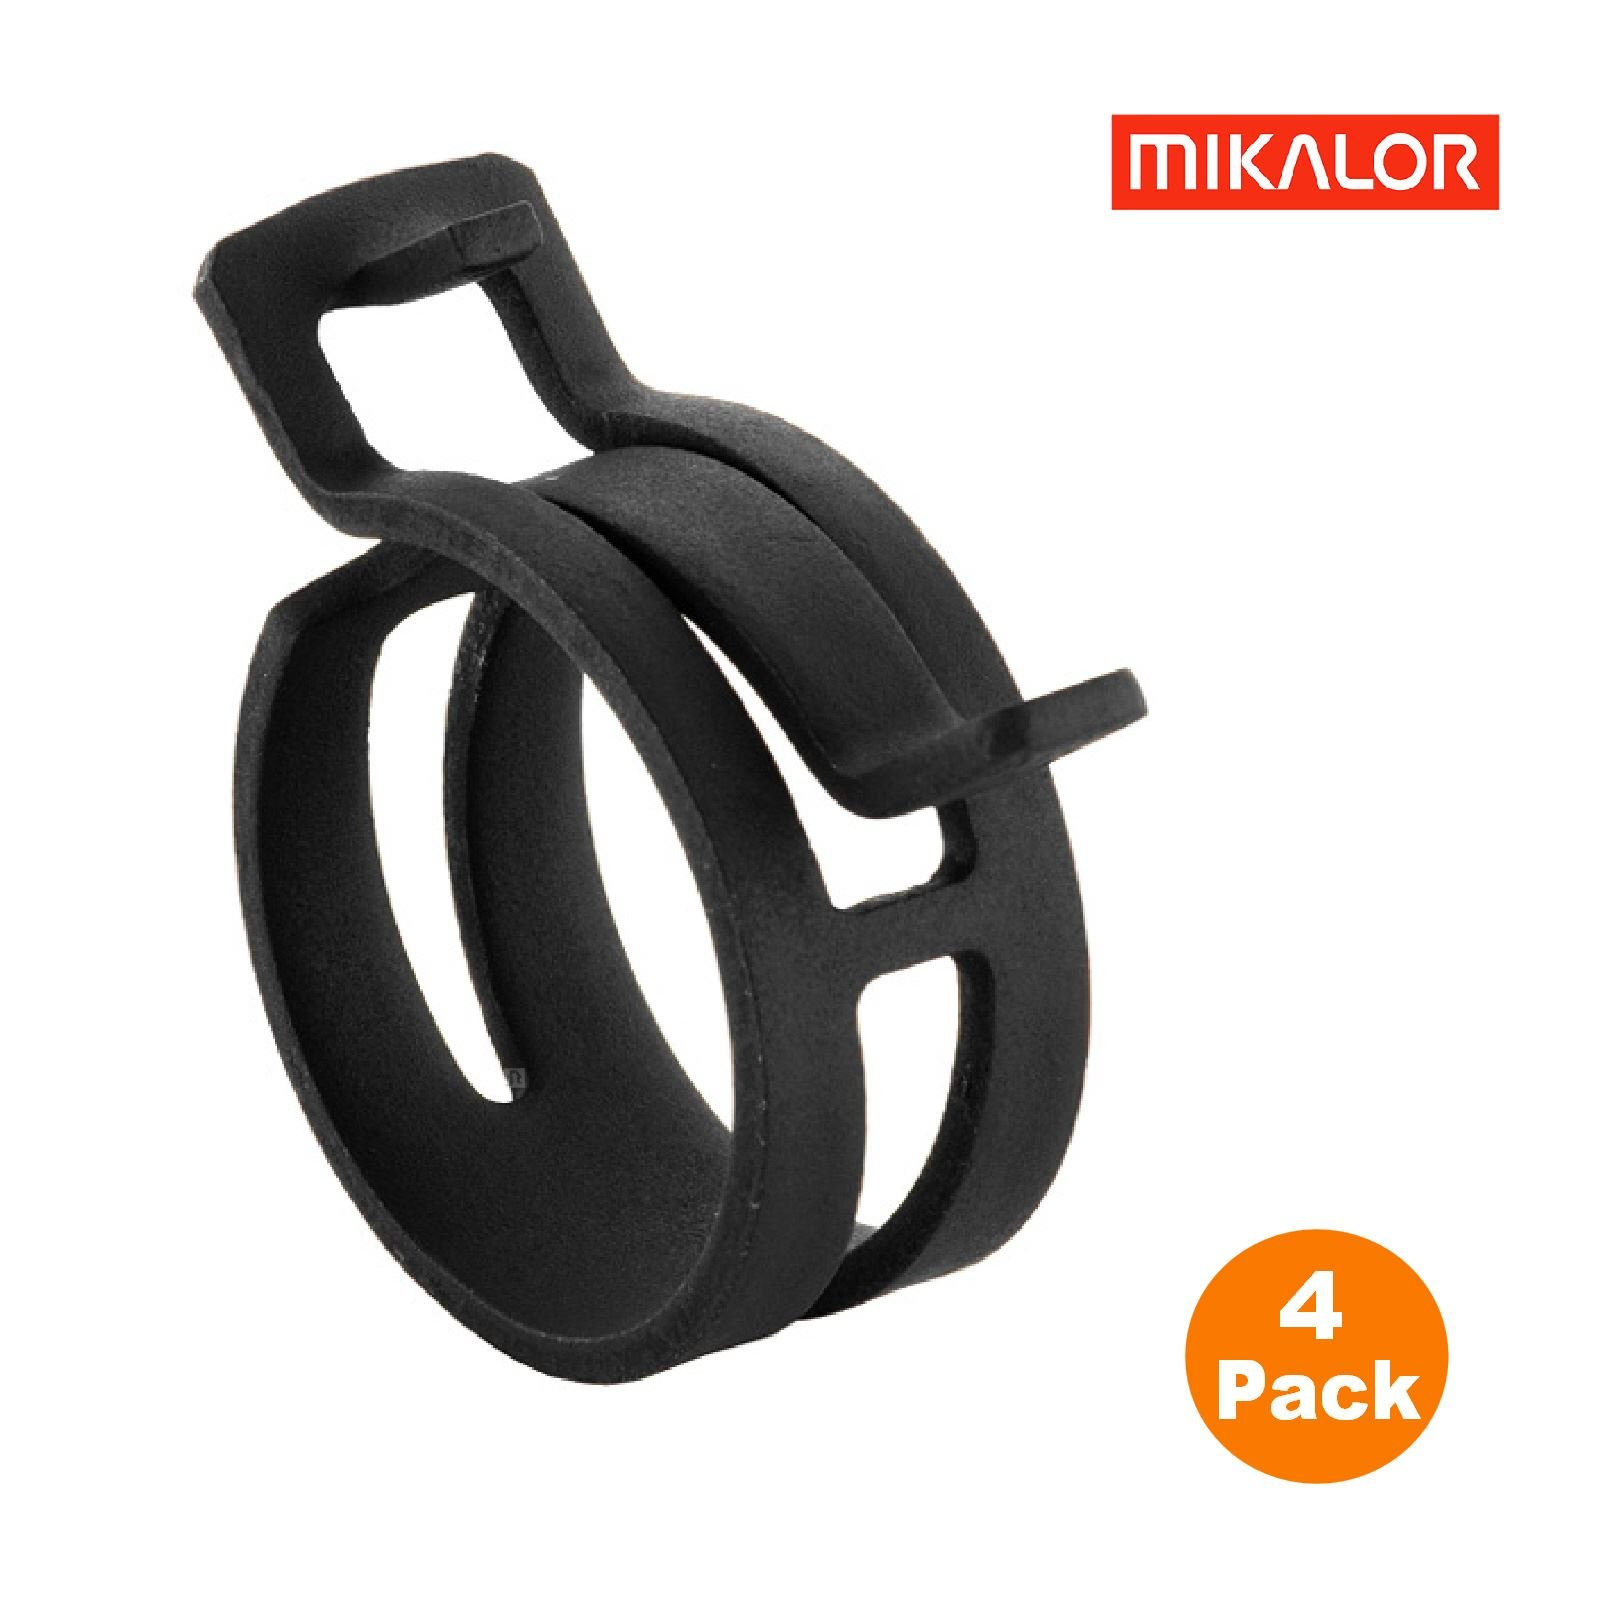 4 x 26mm Mikalor W1 Heavy Duty Spring Band Clip Radiator Pipe Air Oil Fuel DIN 3021